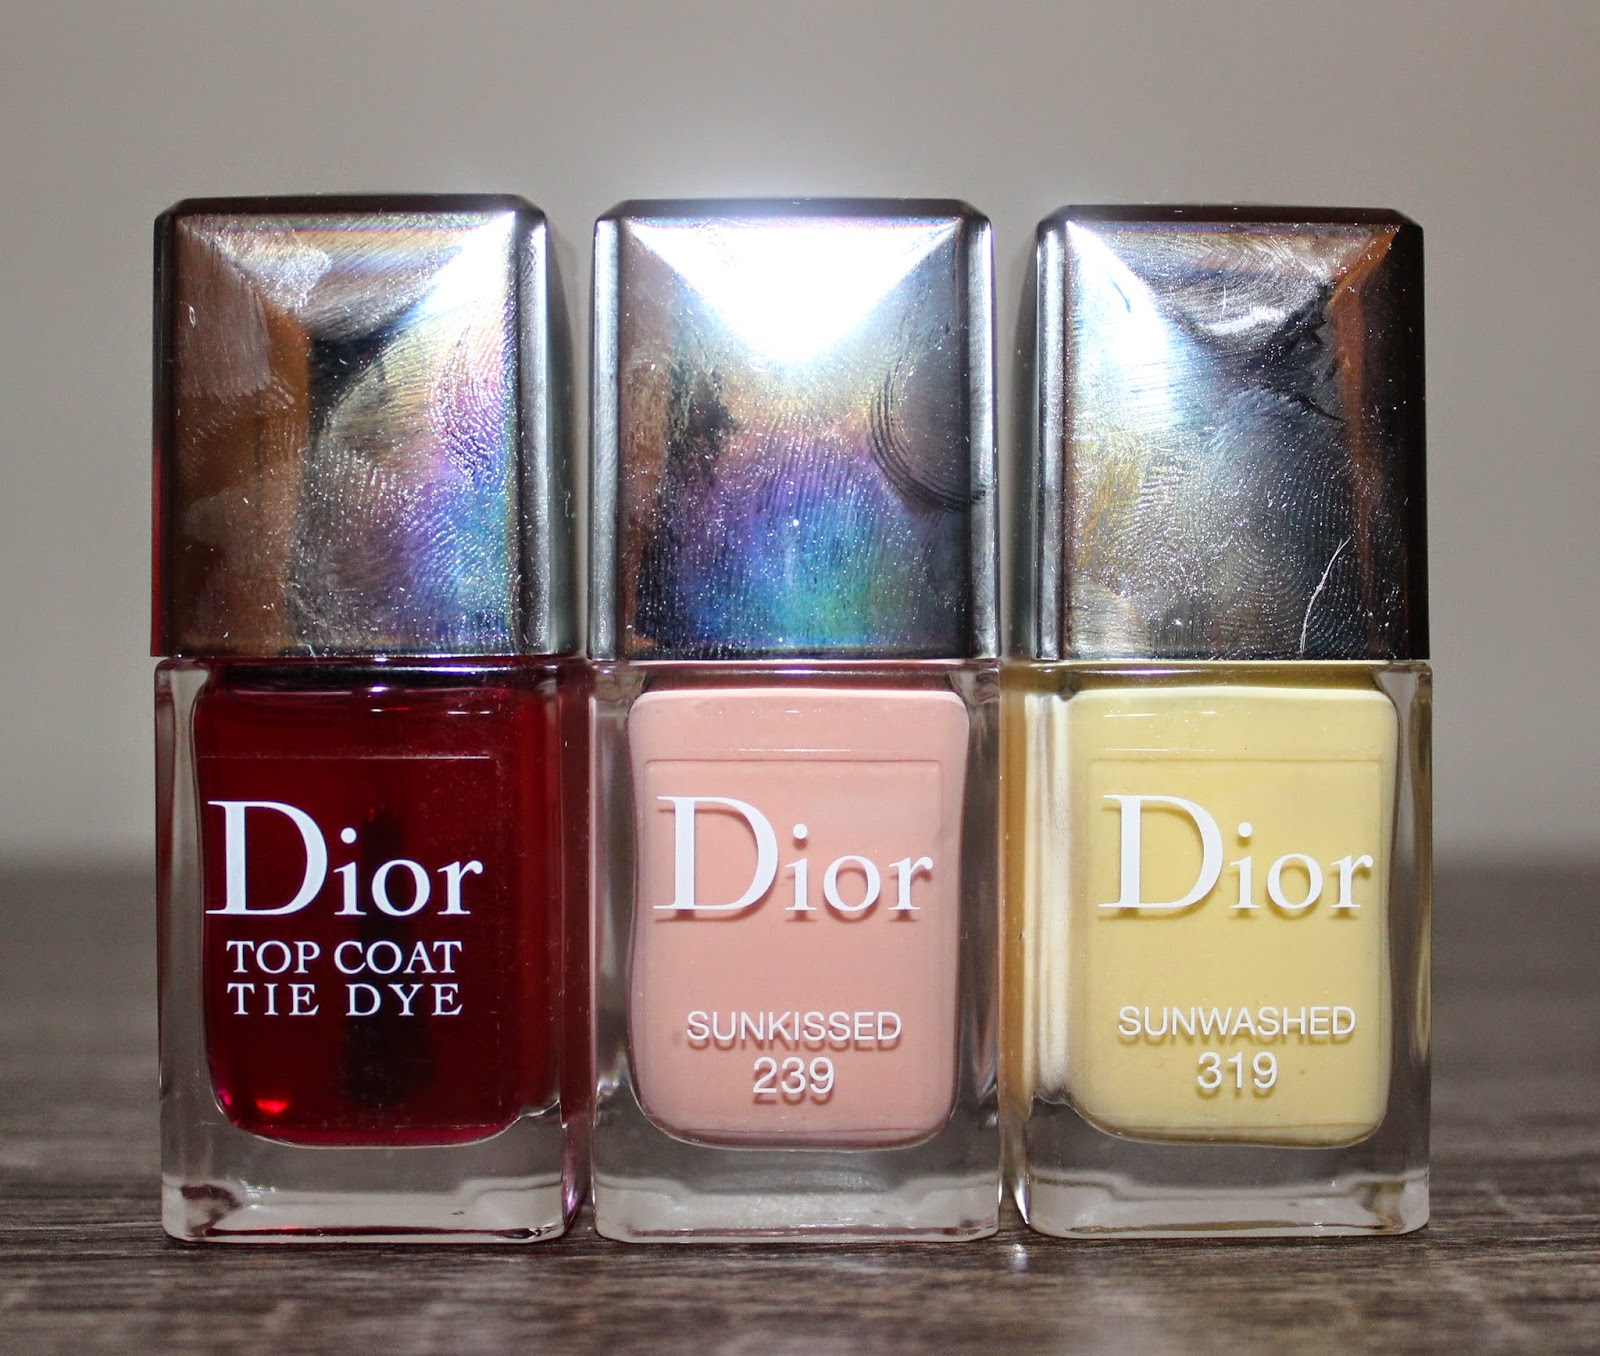 Diror Vernis Summer 2015 Tie Dye Collection